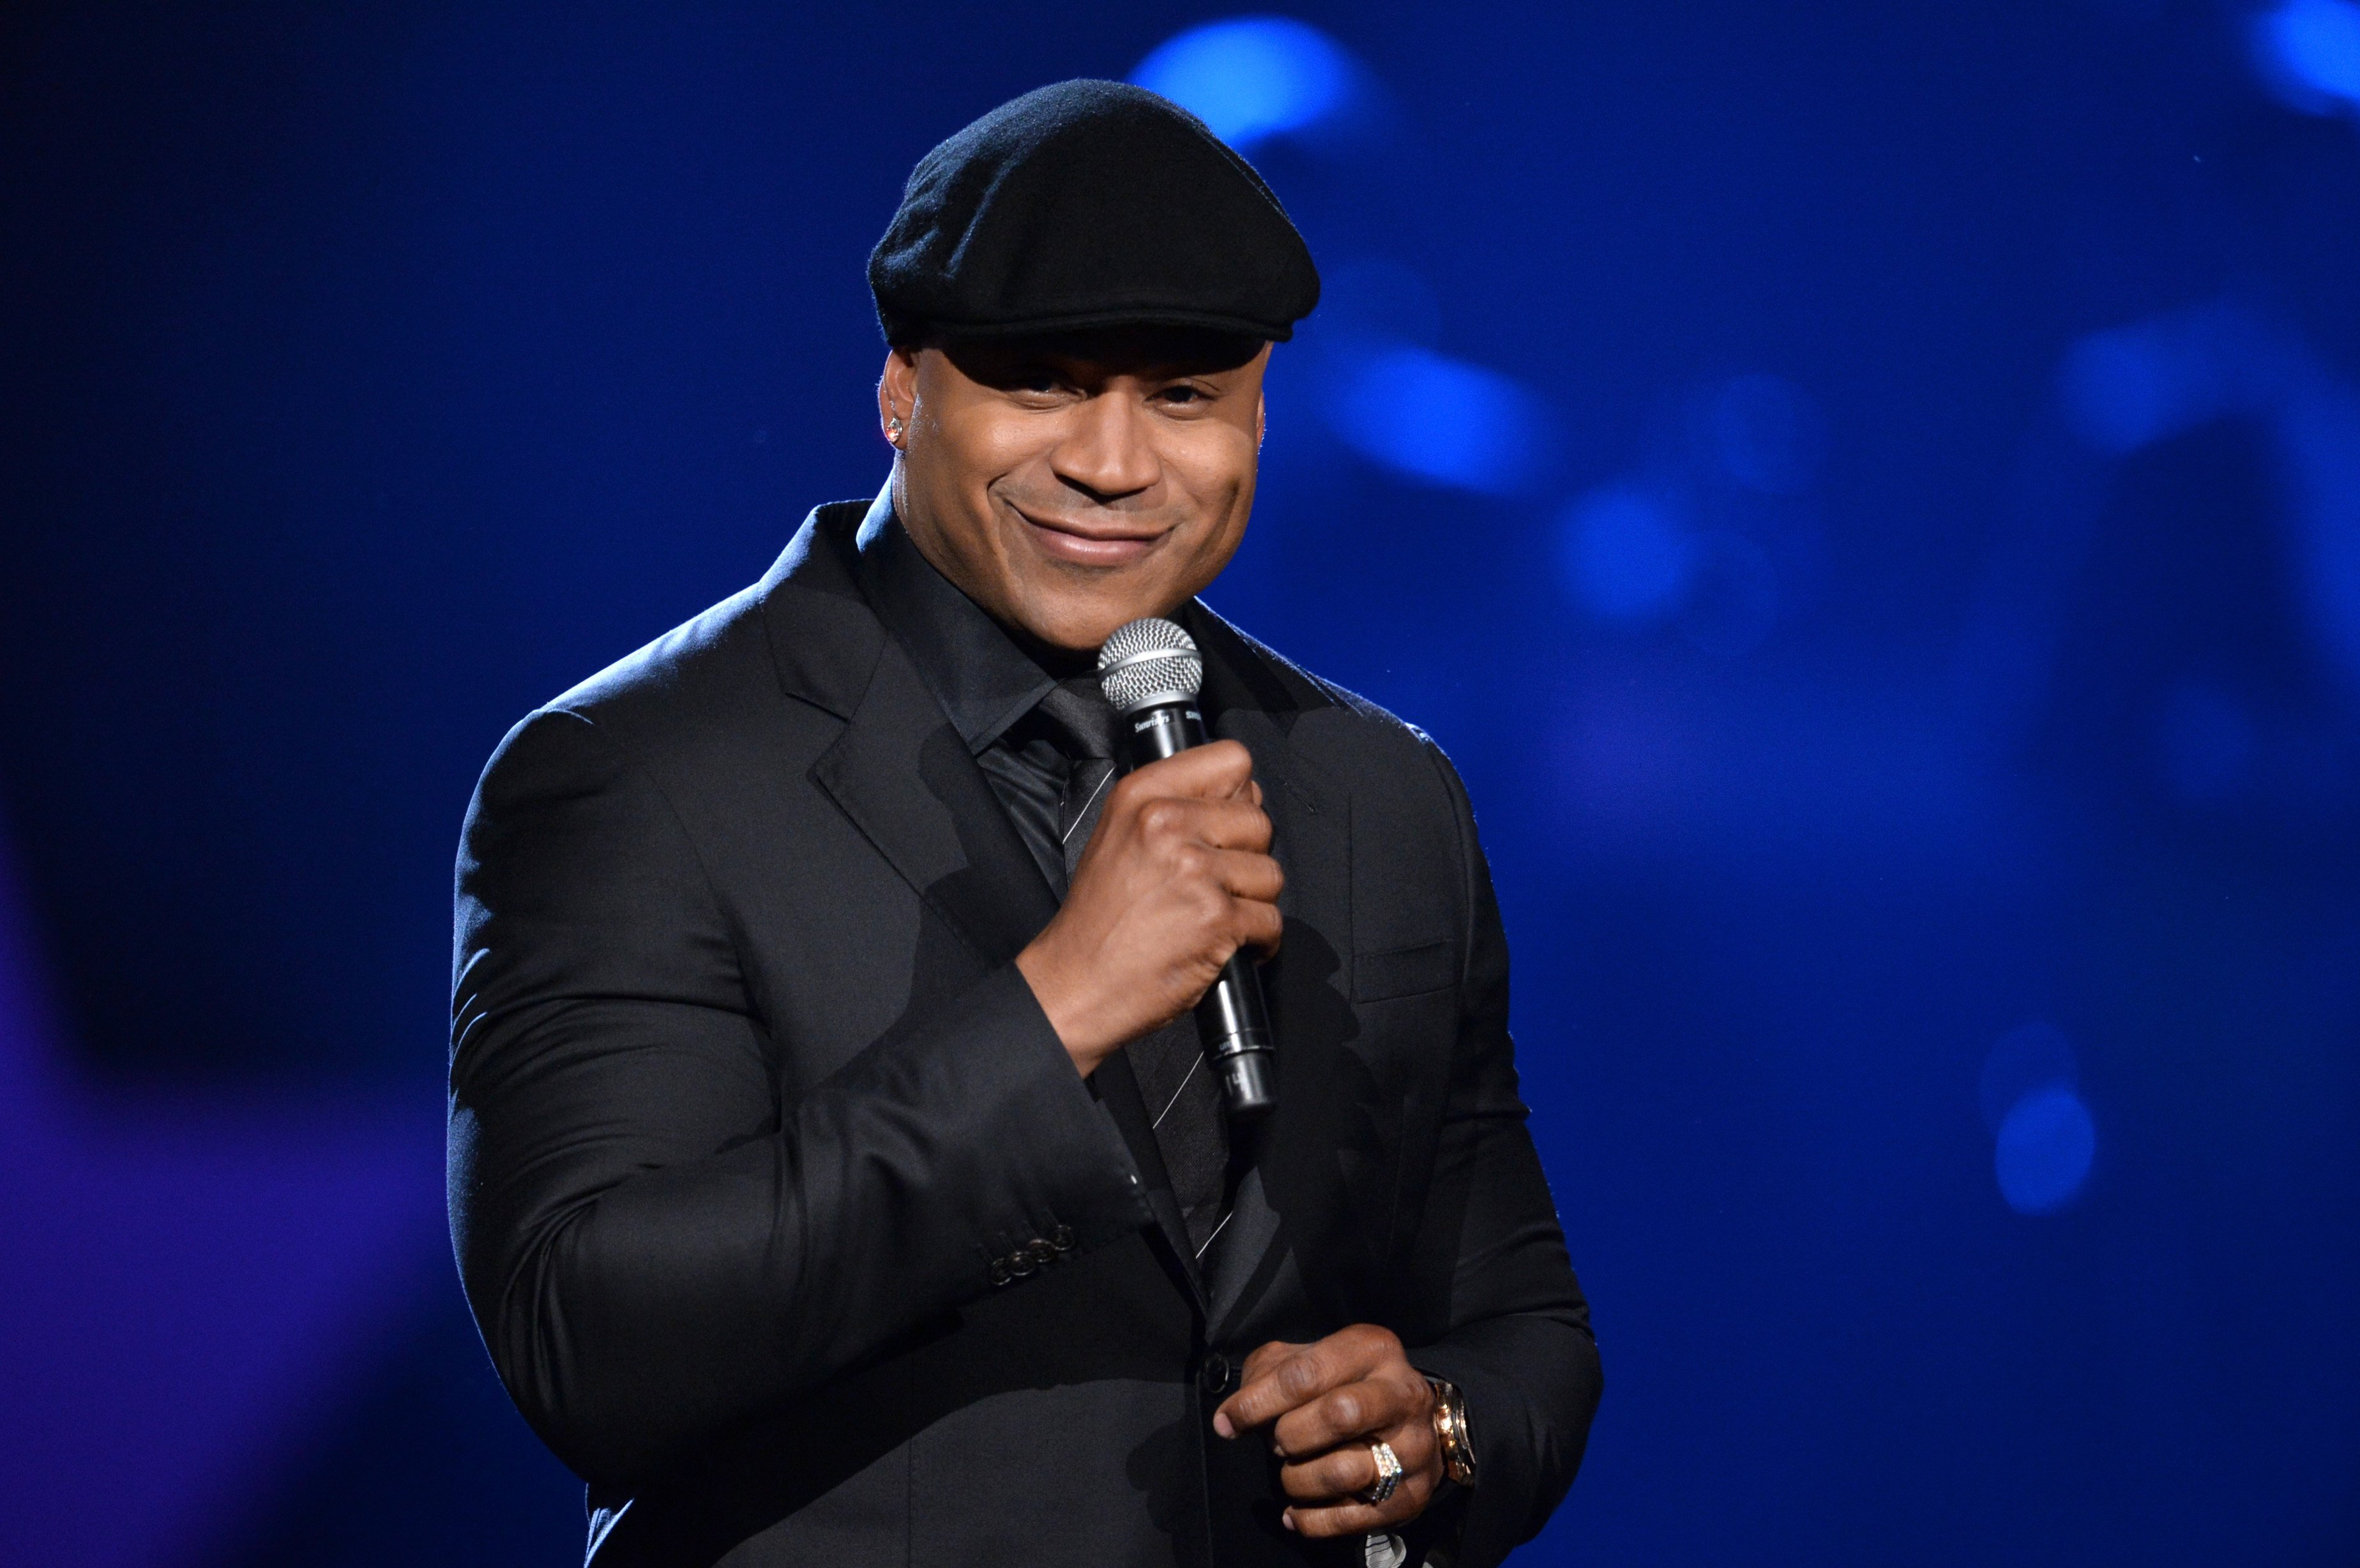 """LL Cool J at """"The Night that Changed America: A Grammy Salute to the Beatles"""" at the Los Angeles Convention Center on January 27, 2014 in Los Angeles, California. 